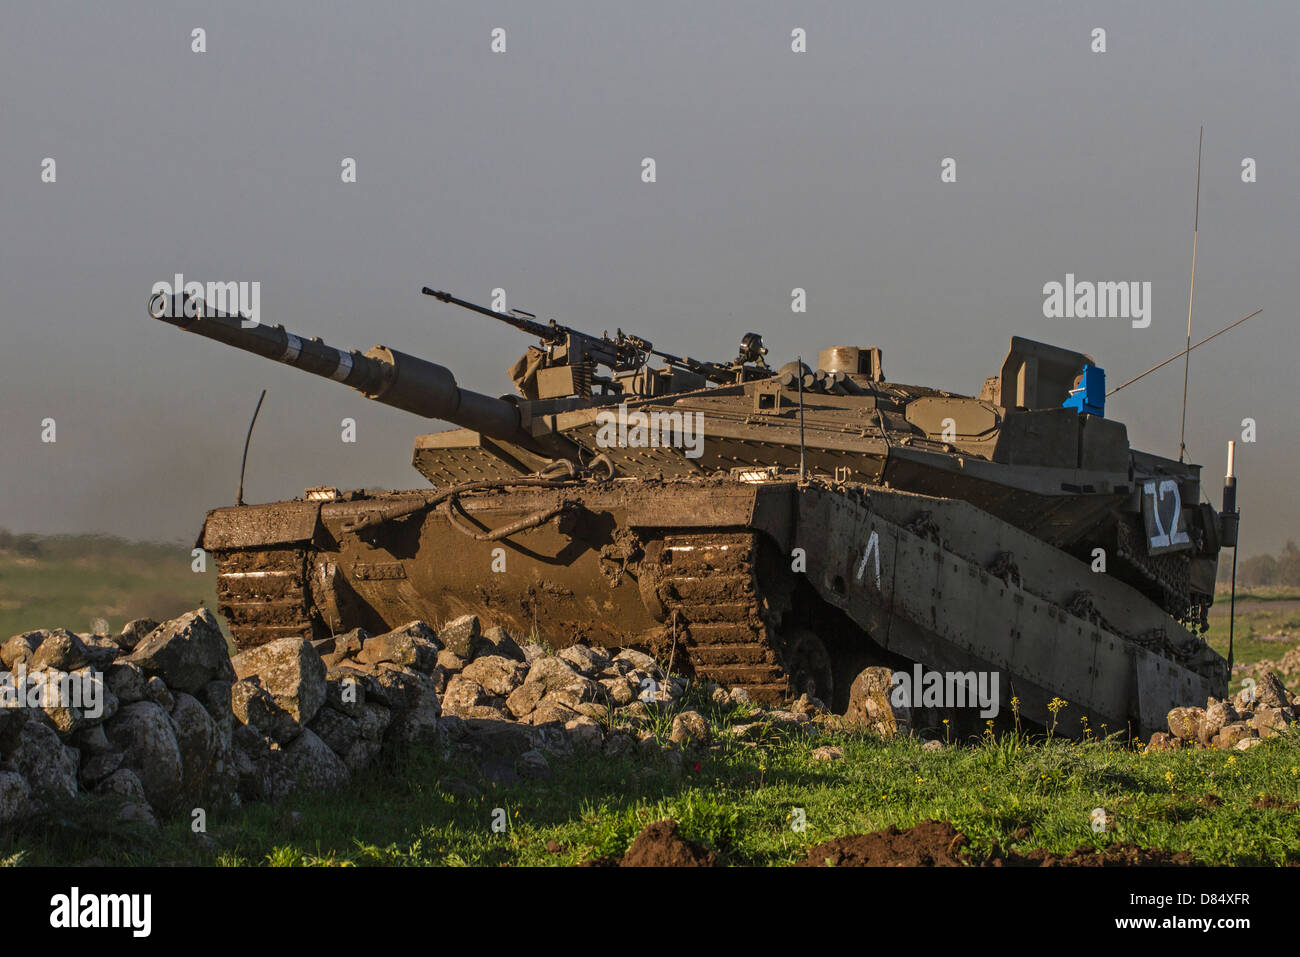 An Israel Defense Force Merkava Mark IV main battle tank during an exercise in the Golan Heights. - Stock Image